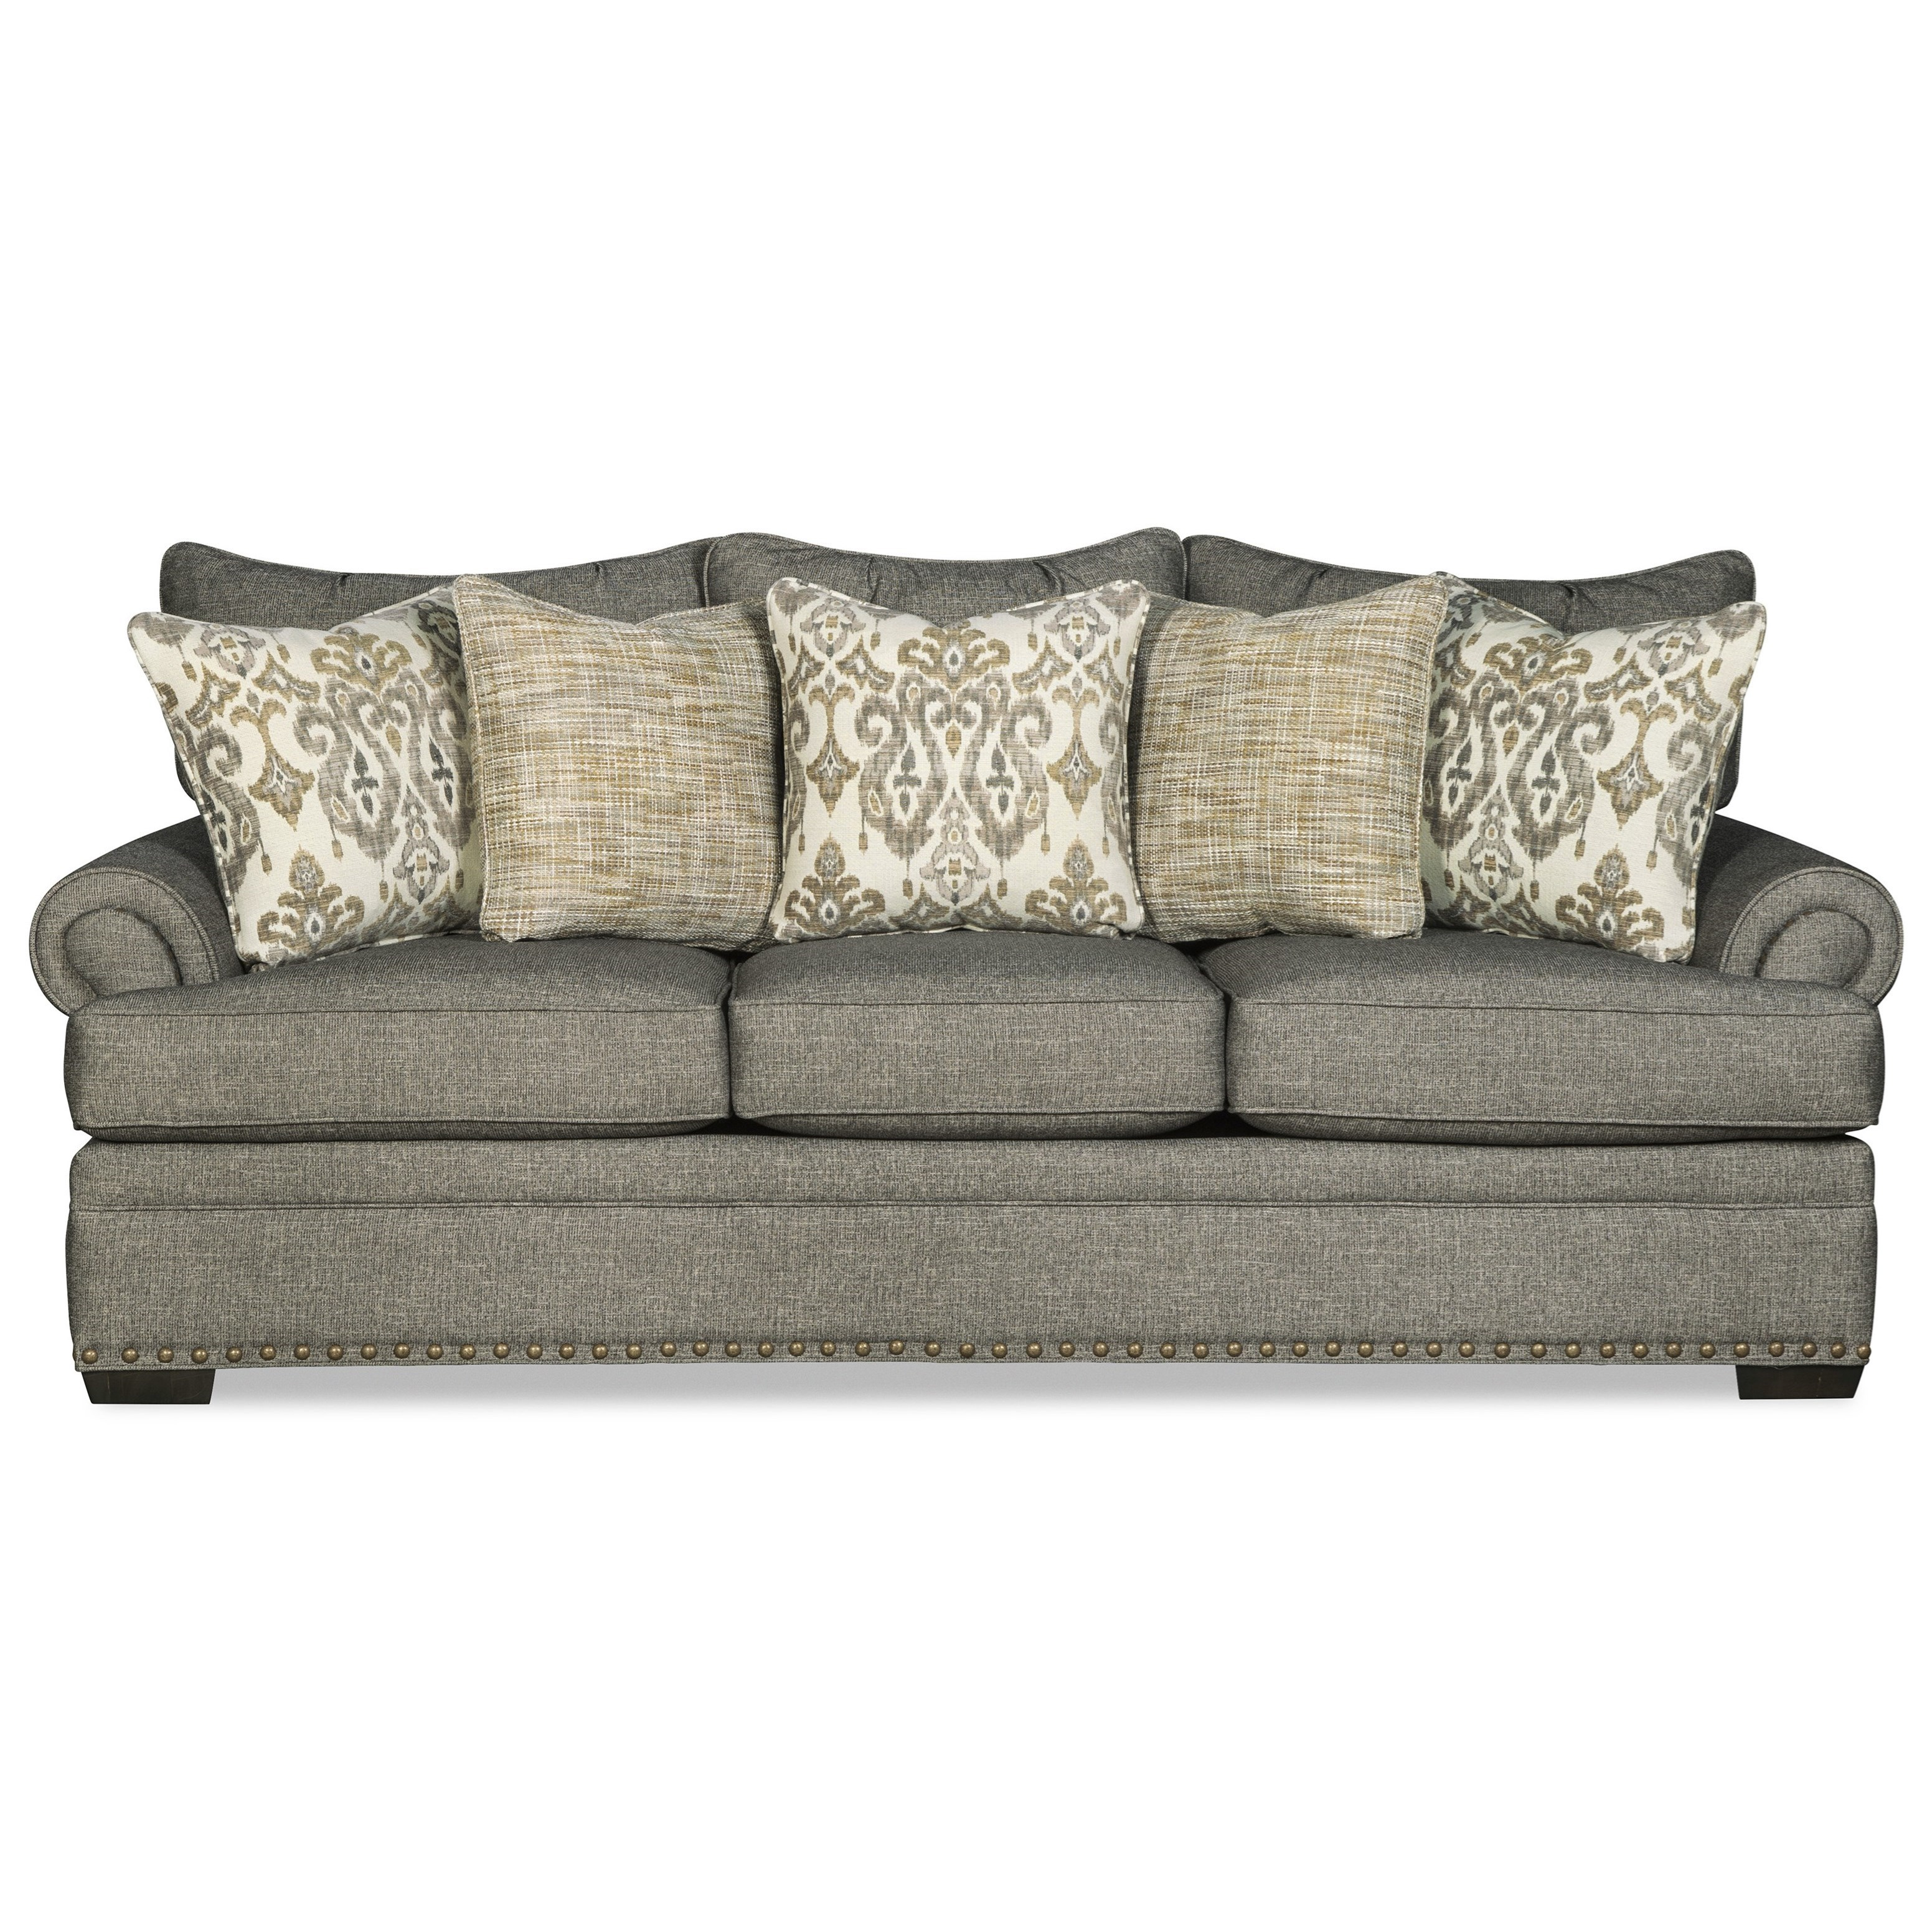 701650BD Sofa by Craftmaster at Prime Brothers Furniture